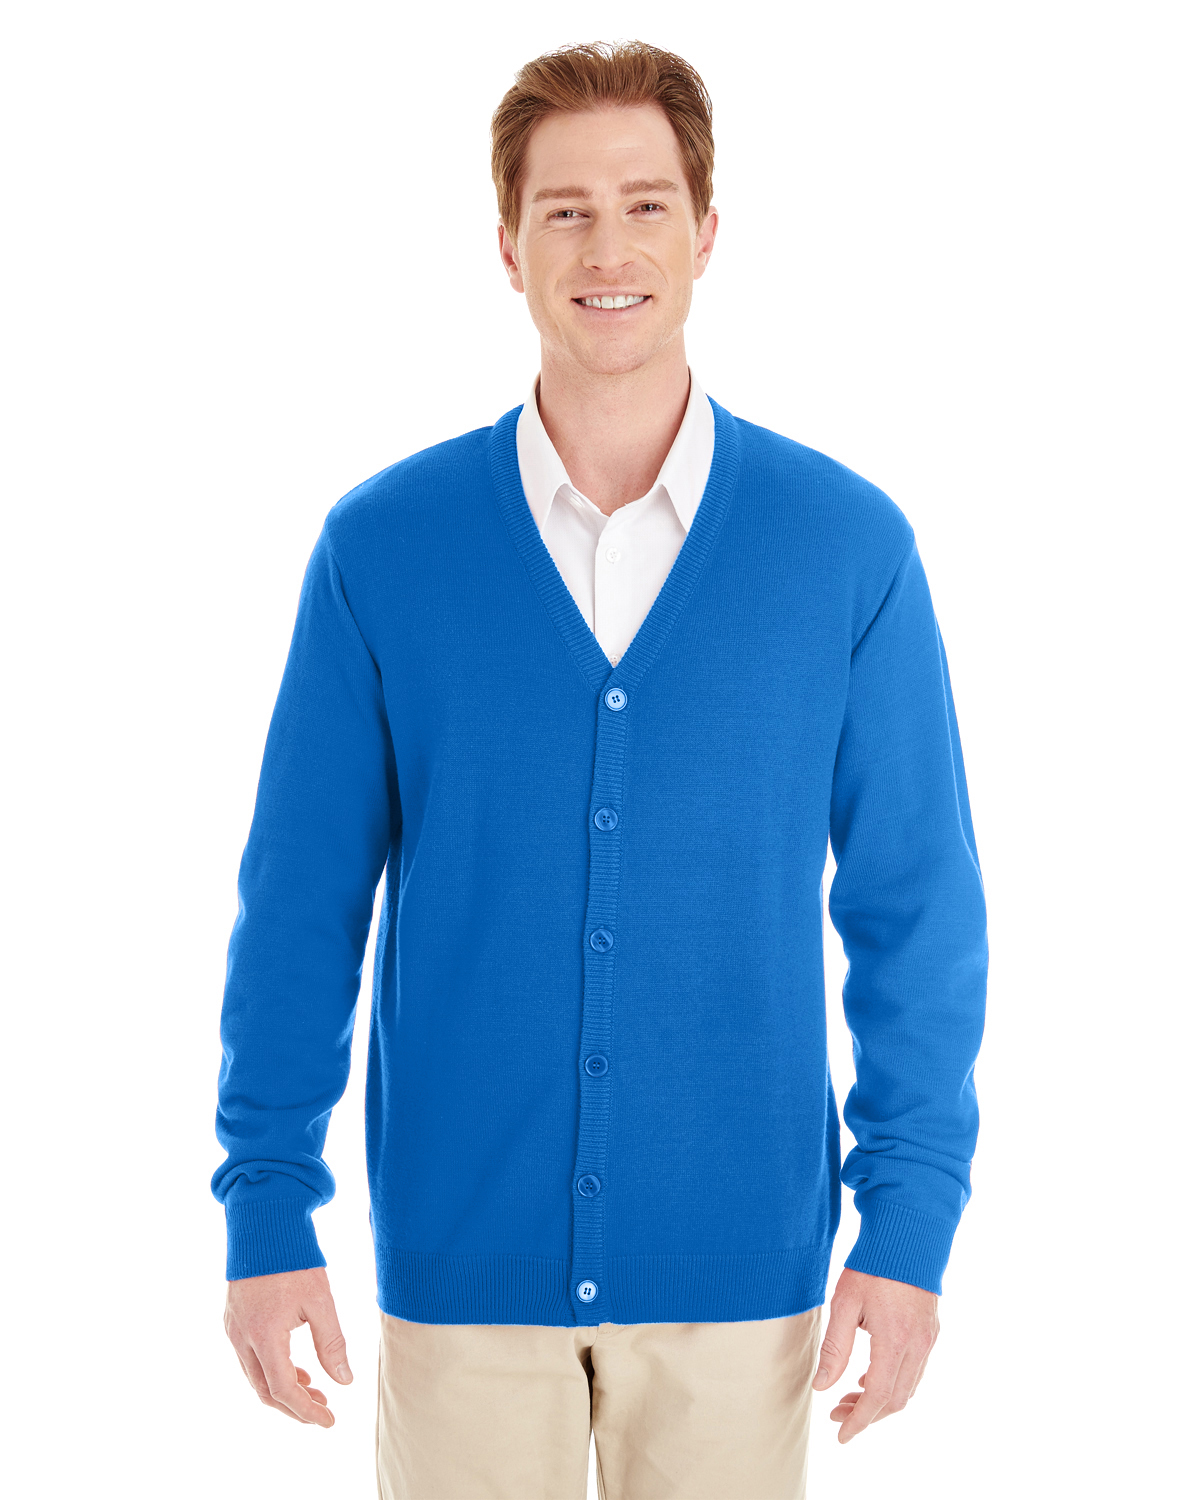 Harriton - M425 Men's Pilbloc V-Neck Button Cardigan Sweater